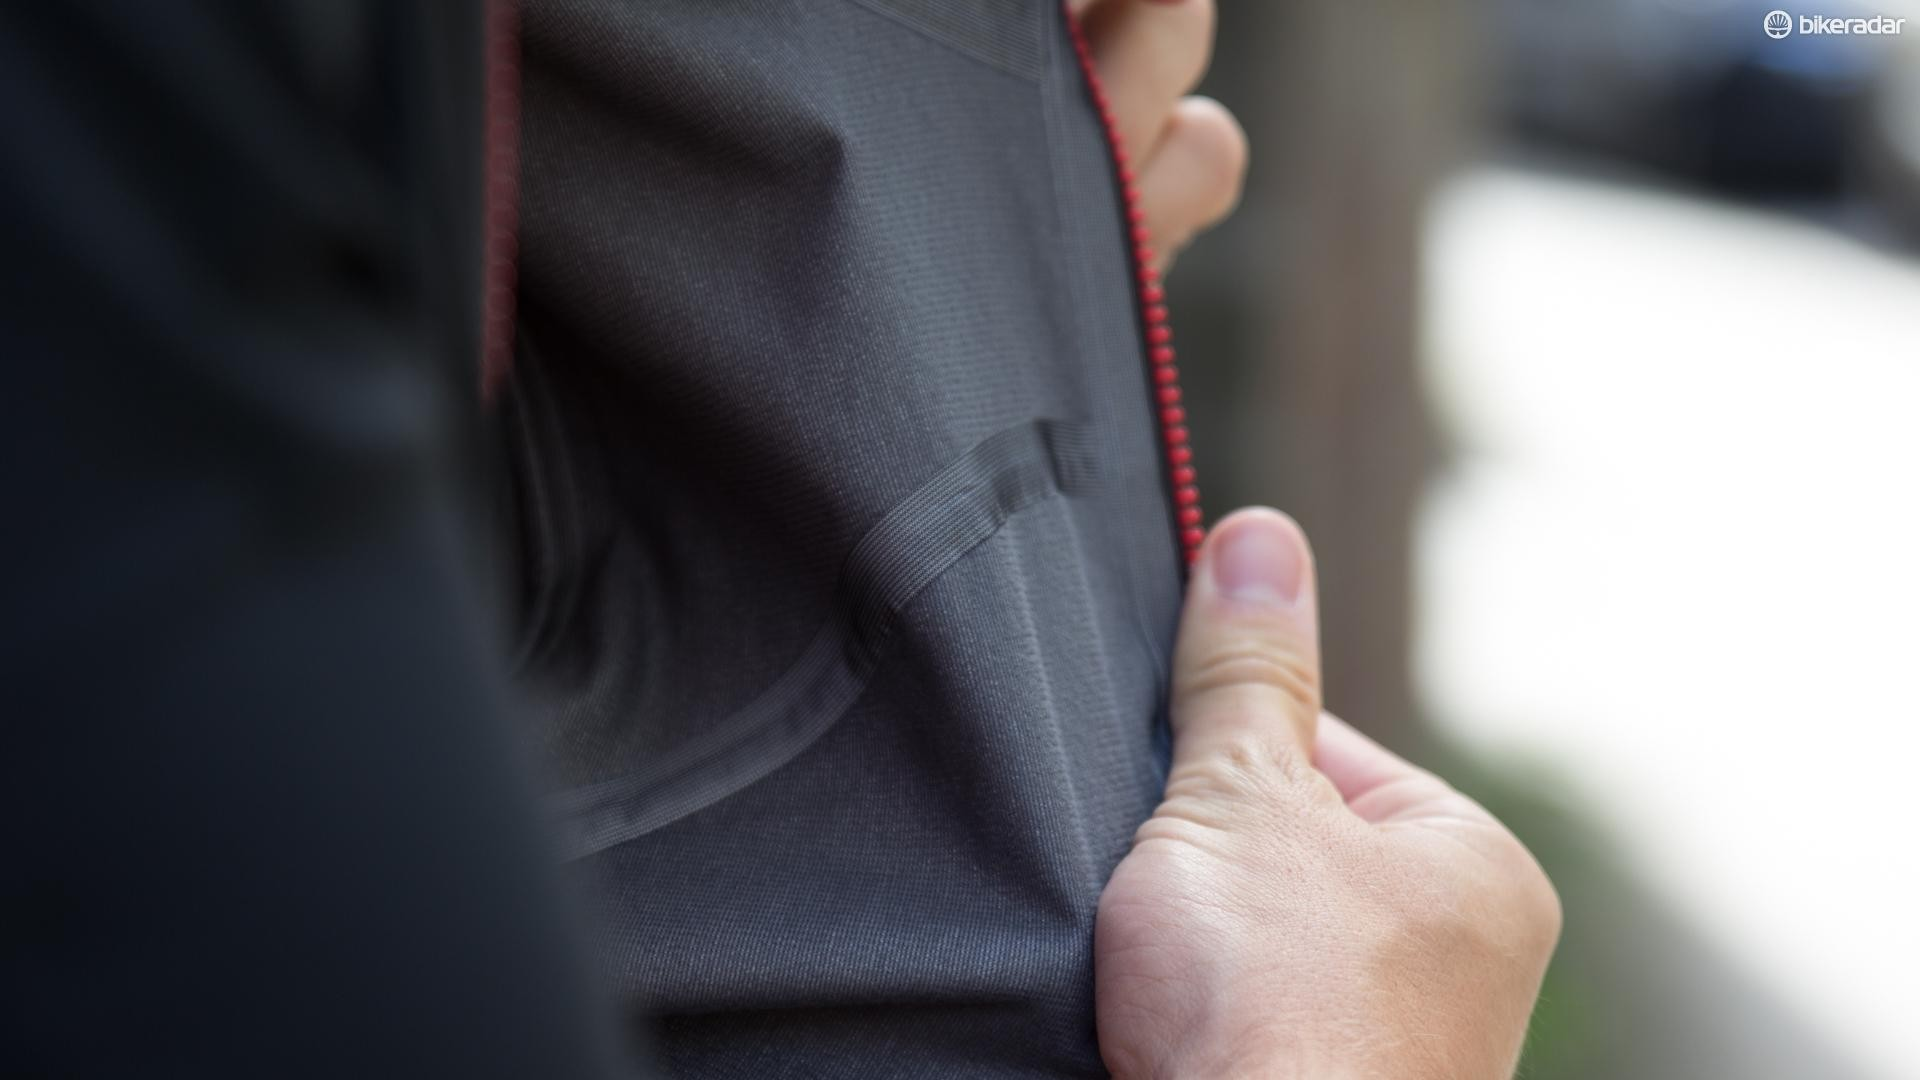 The Gore Windstopper fabric has taped seams to improve water resistance and a soft brushed finish on the inside